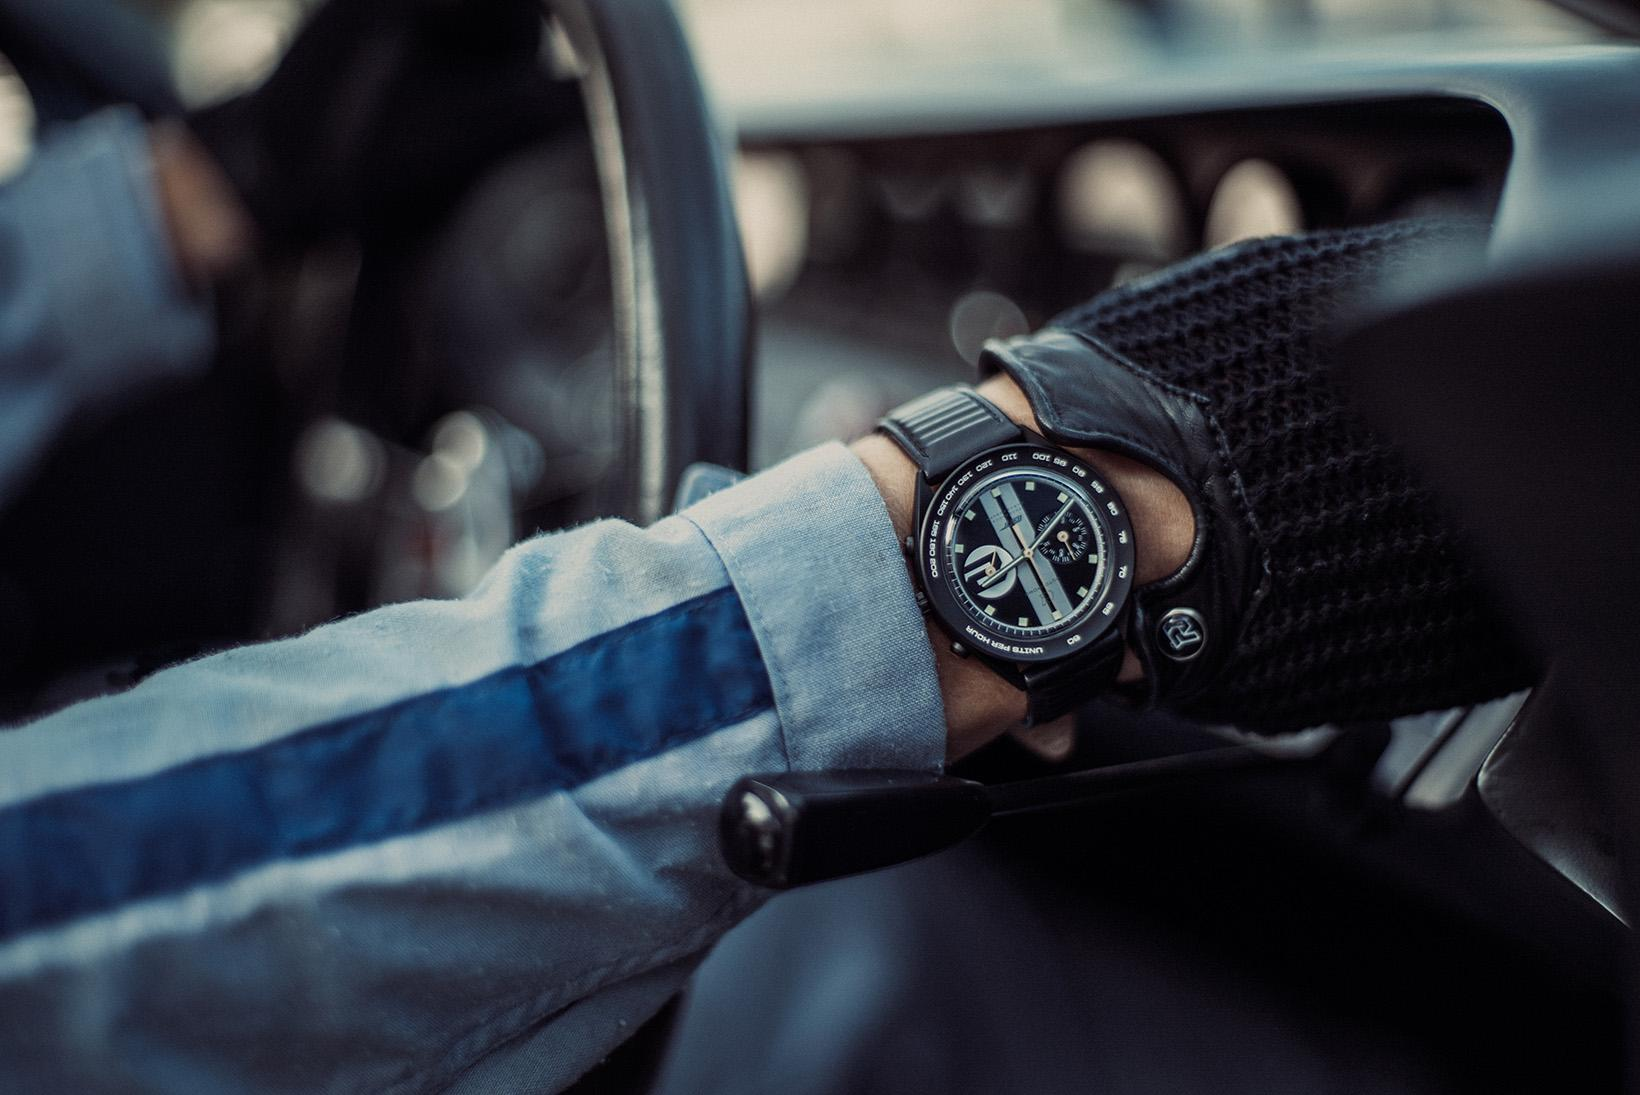 Autodromo Ford Gt Endurance Owners Edition Chronographs Watch Custom Color Serial Number Chassis Pre Order